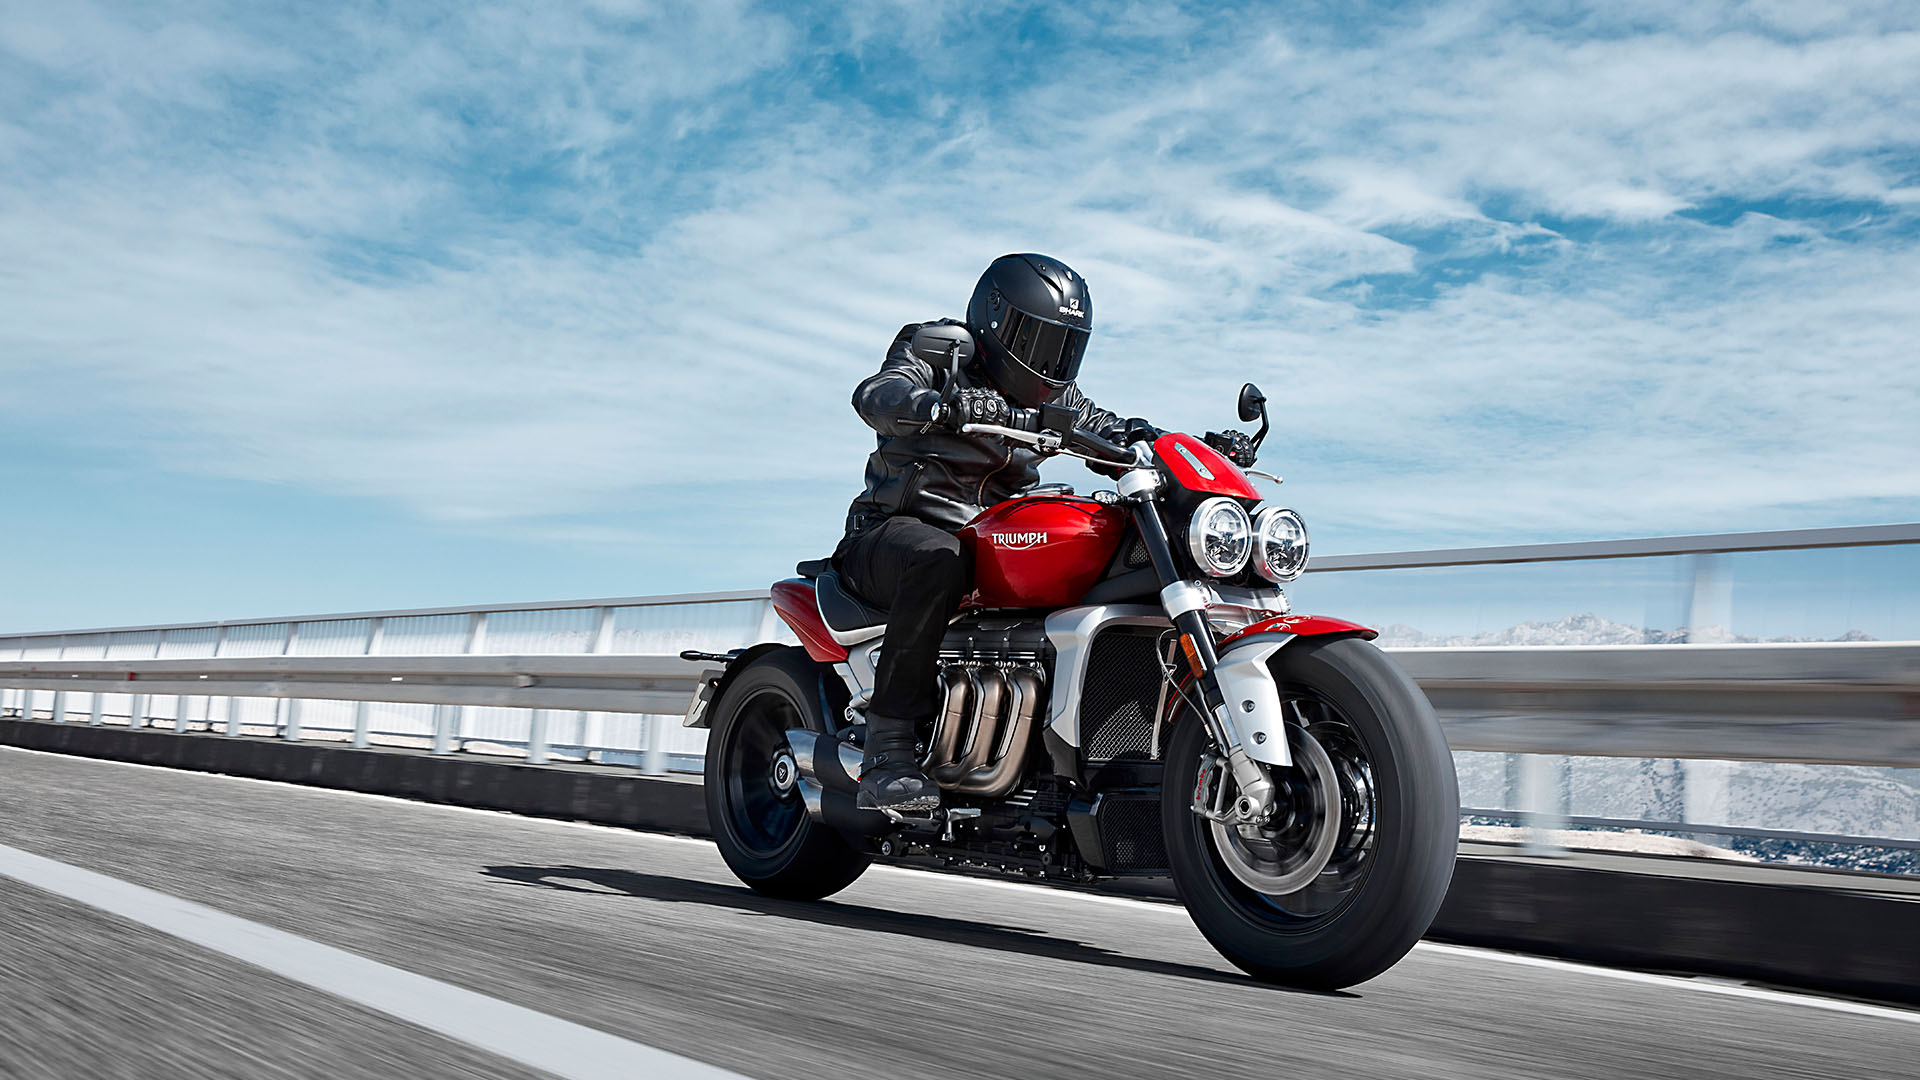 Triumph new Rocket 3 R in Korosi Red riding swiftly on a road that runs through a mountainous terrain